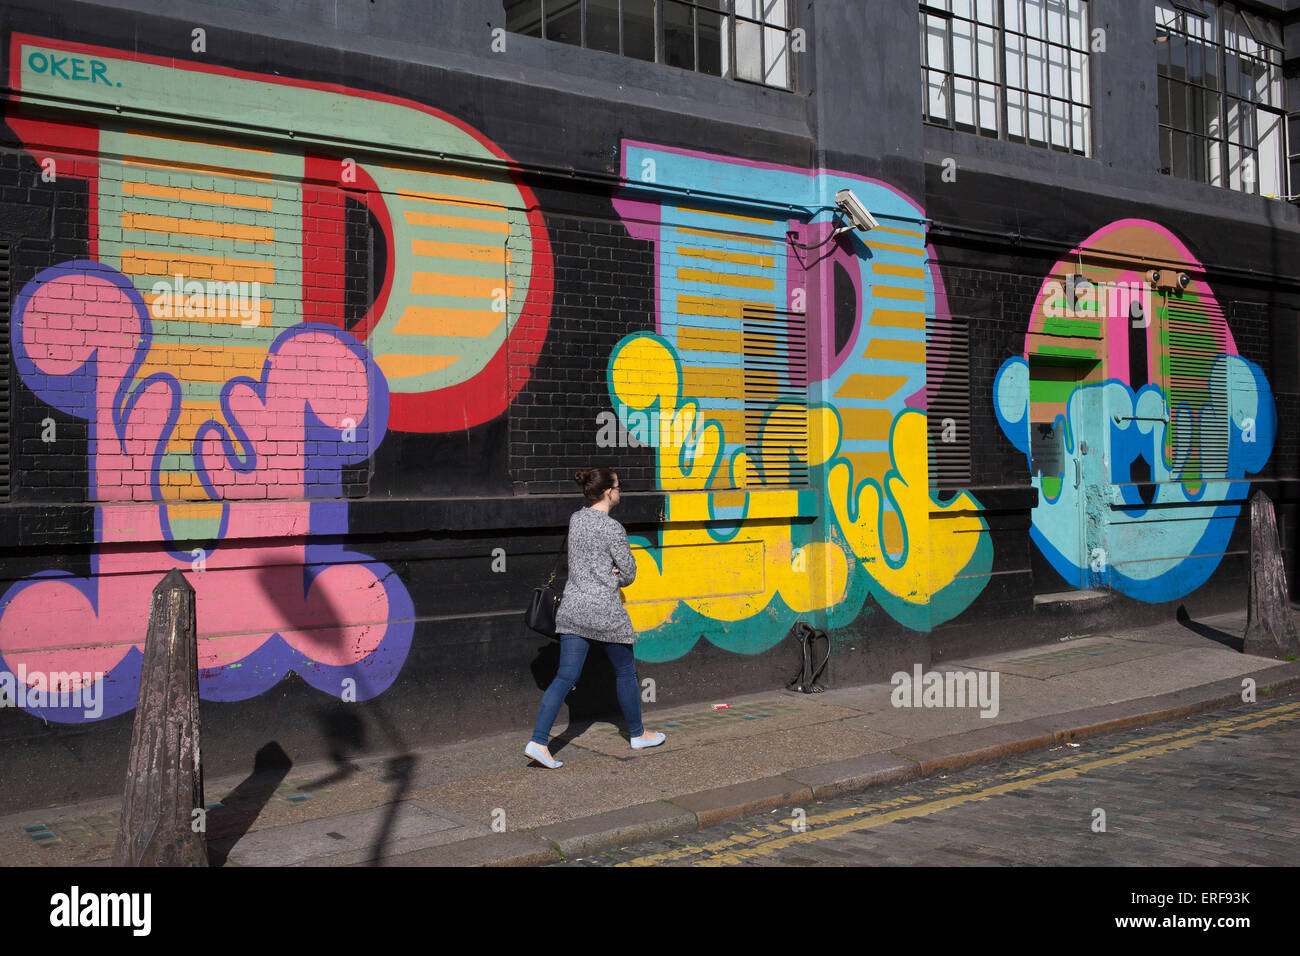 Street art in shoreditch reads pro london uk street art in the east end of london is an ever changing visual enigma as the artworks constantly change